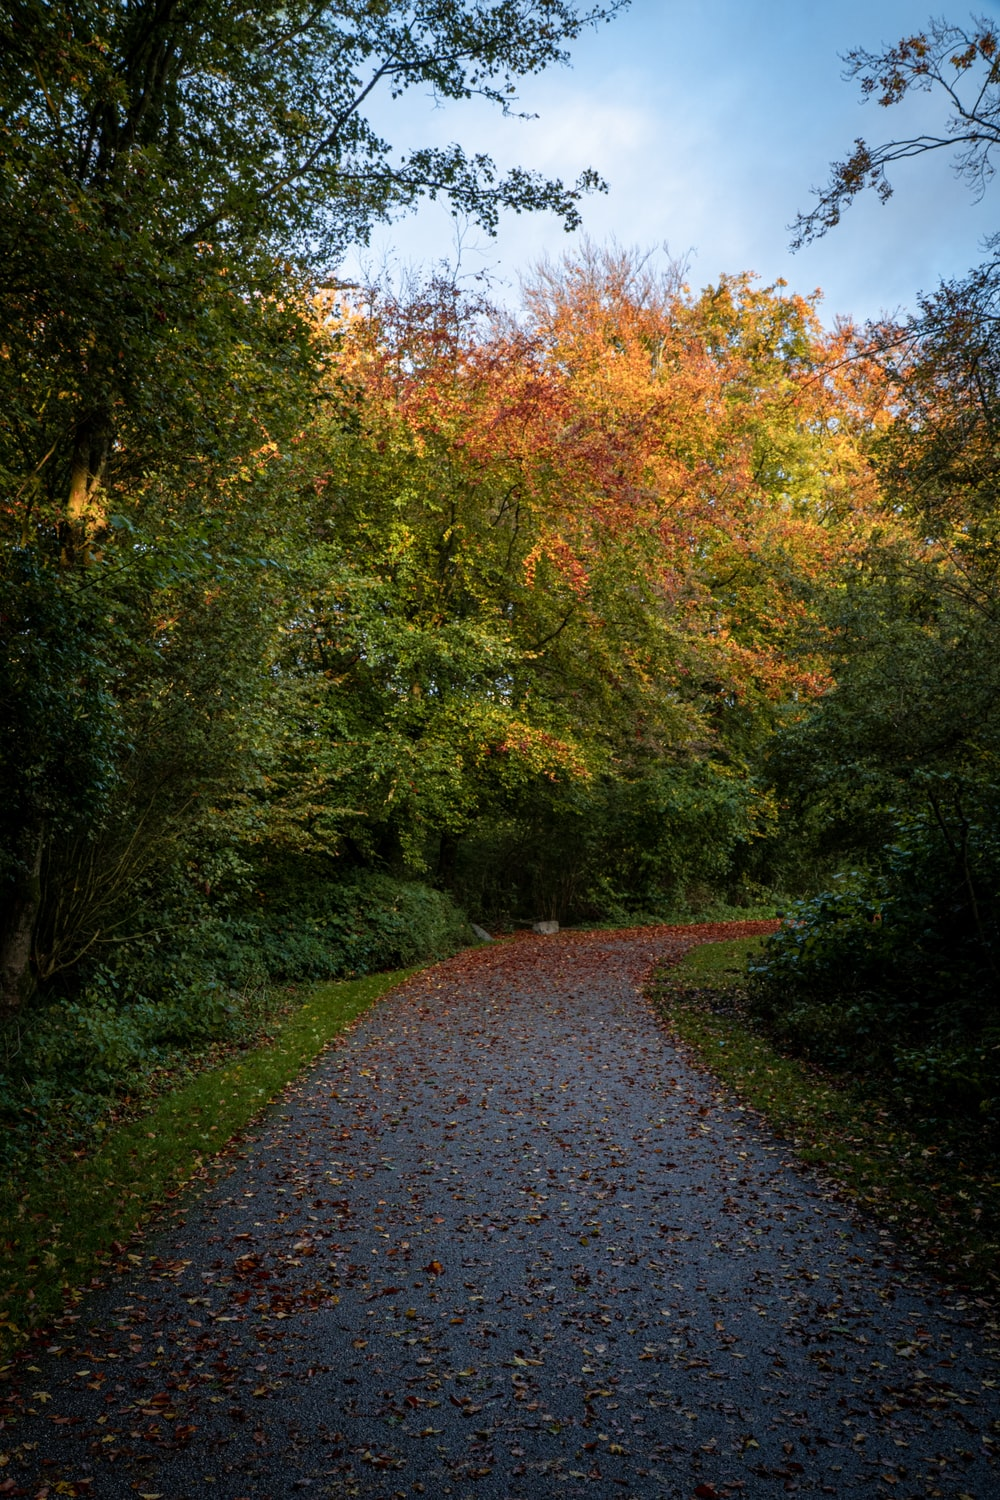 pathway filled with leaves